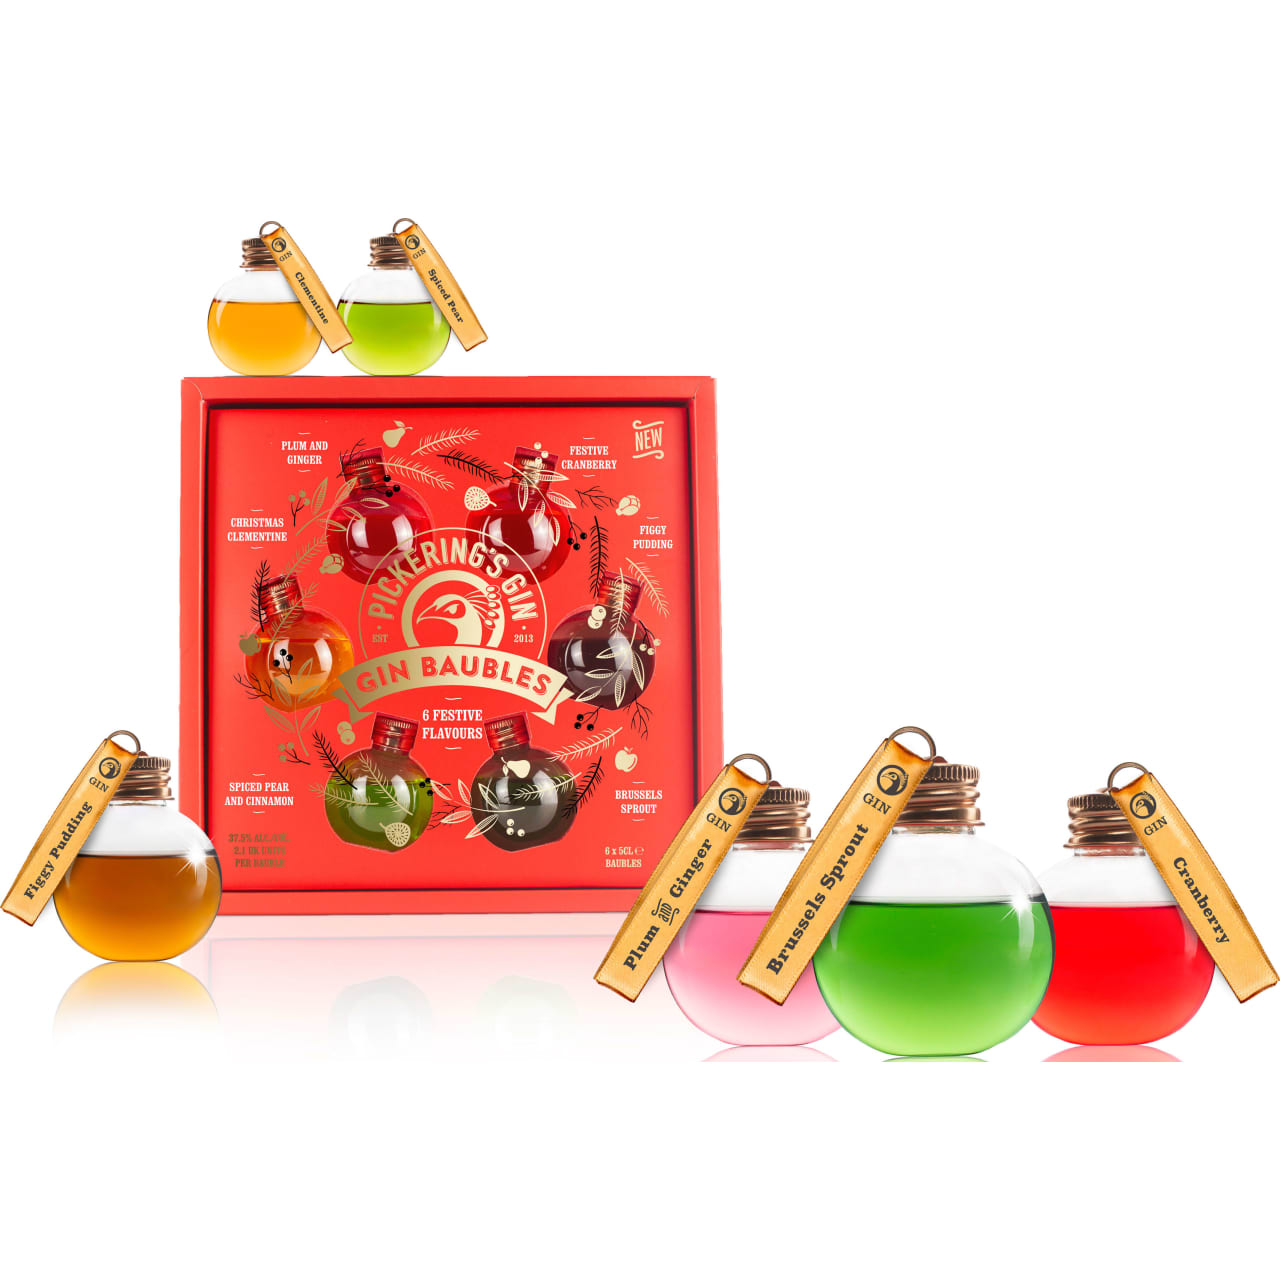 Product Image - Pickering's Festively Flavoured Gin Baubles